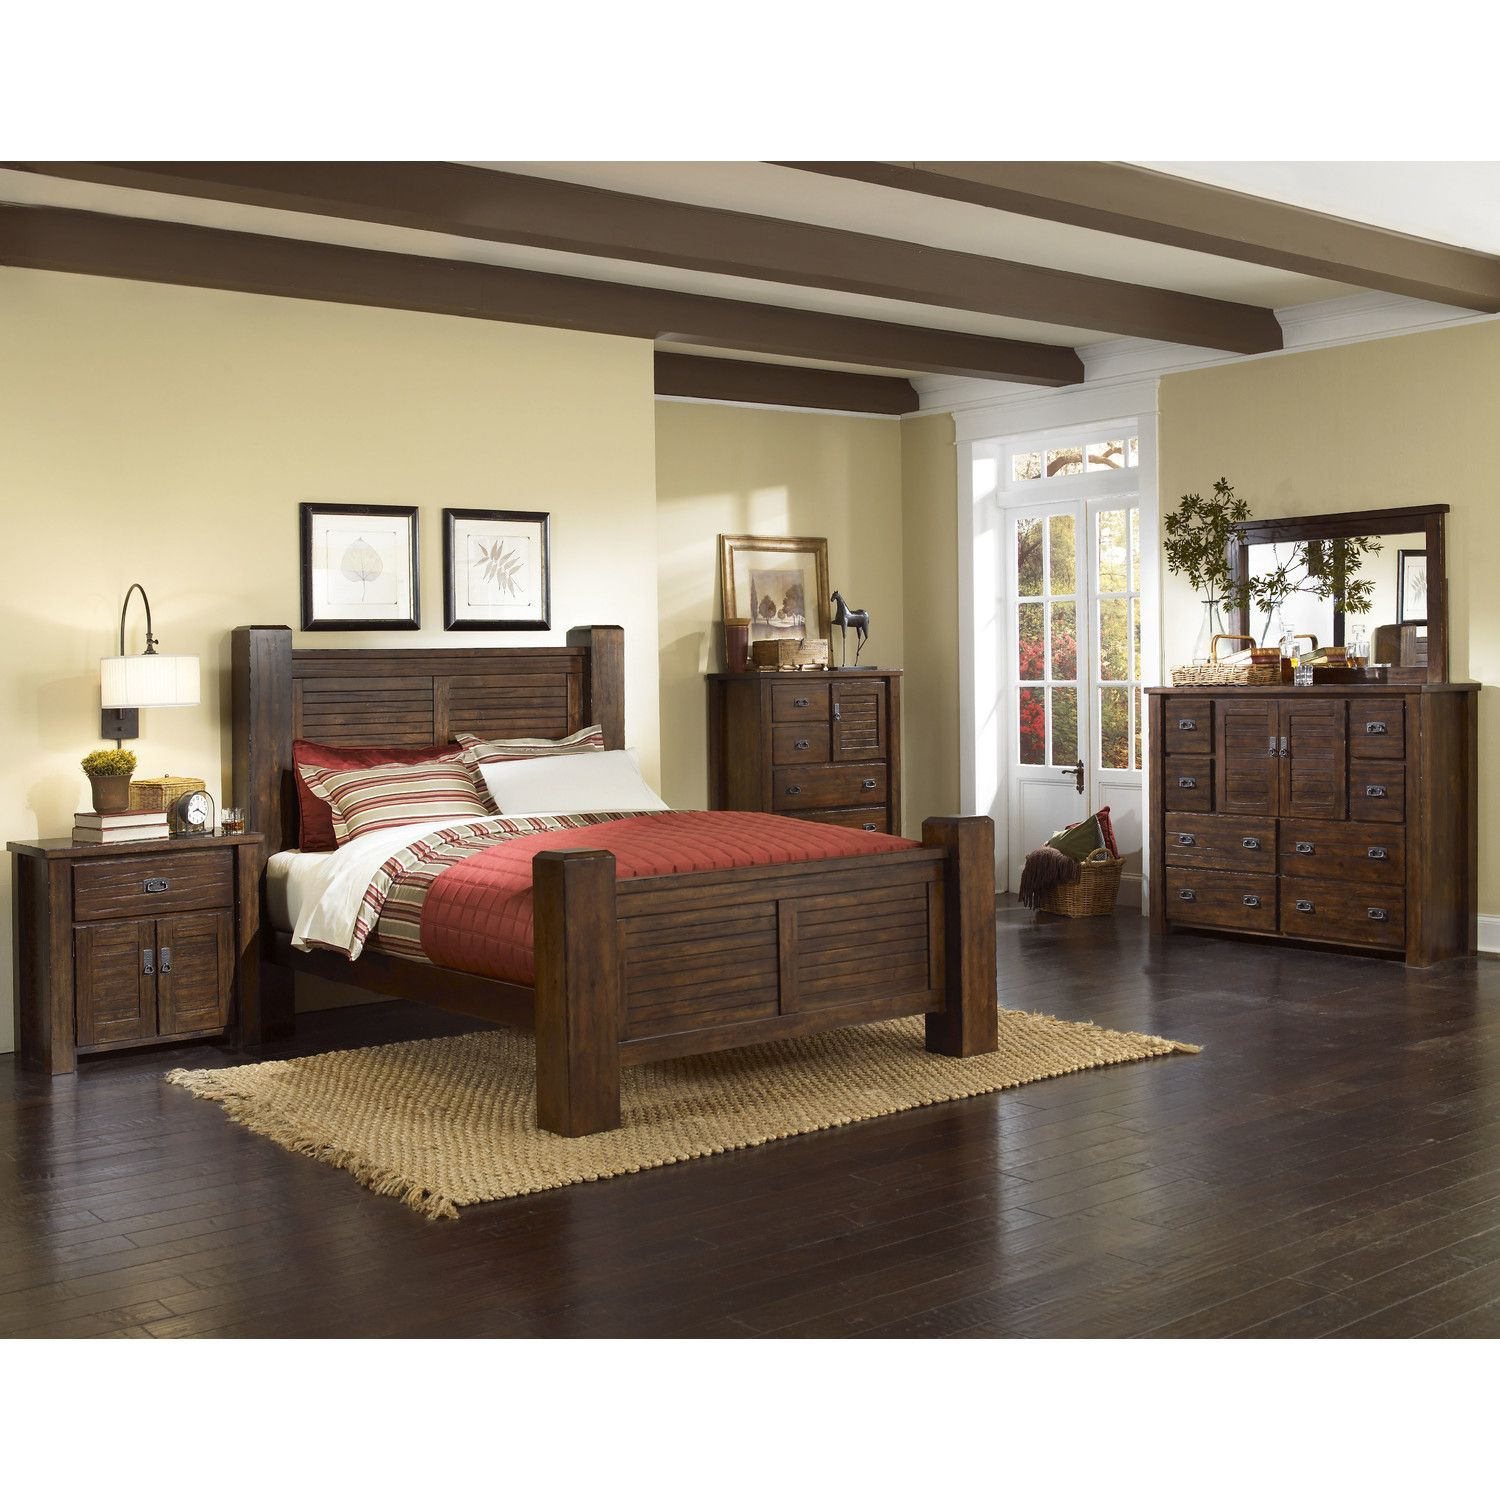 less outlet dqf mart discount beds products frisco designer san sets mattress furniture stores furnishings dfw at discounted dallas tx wood twin in plano store solid bt bedroom reviews airport amish houston online nebraska mattresses